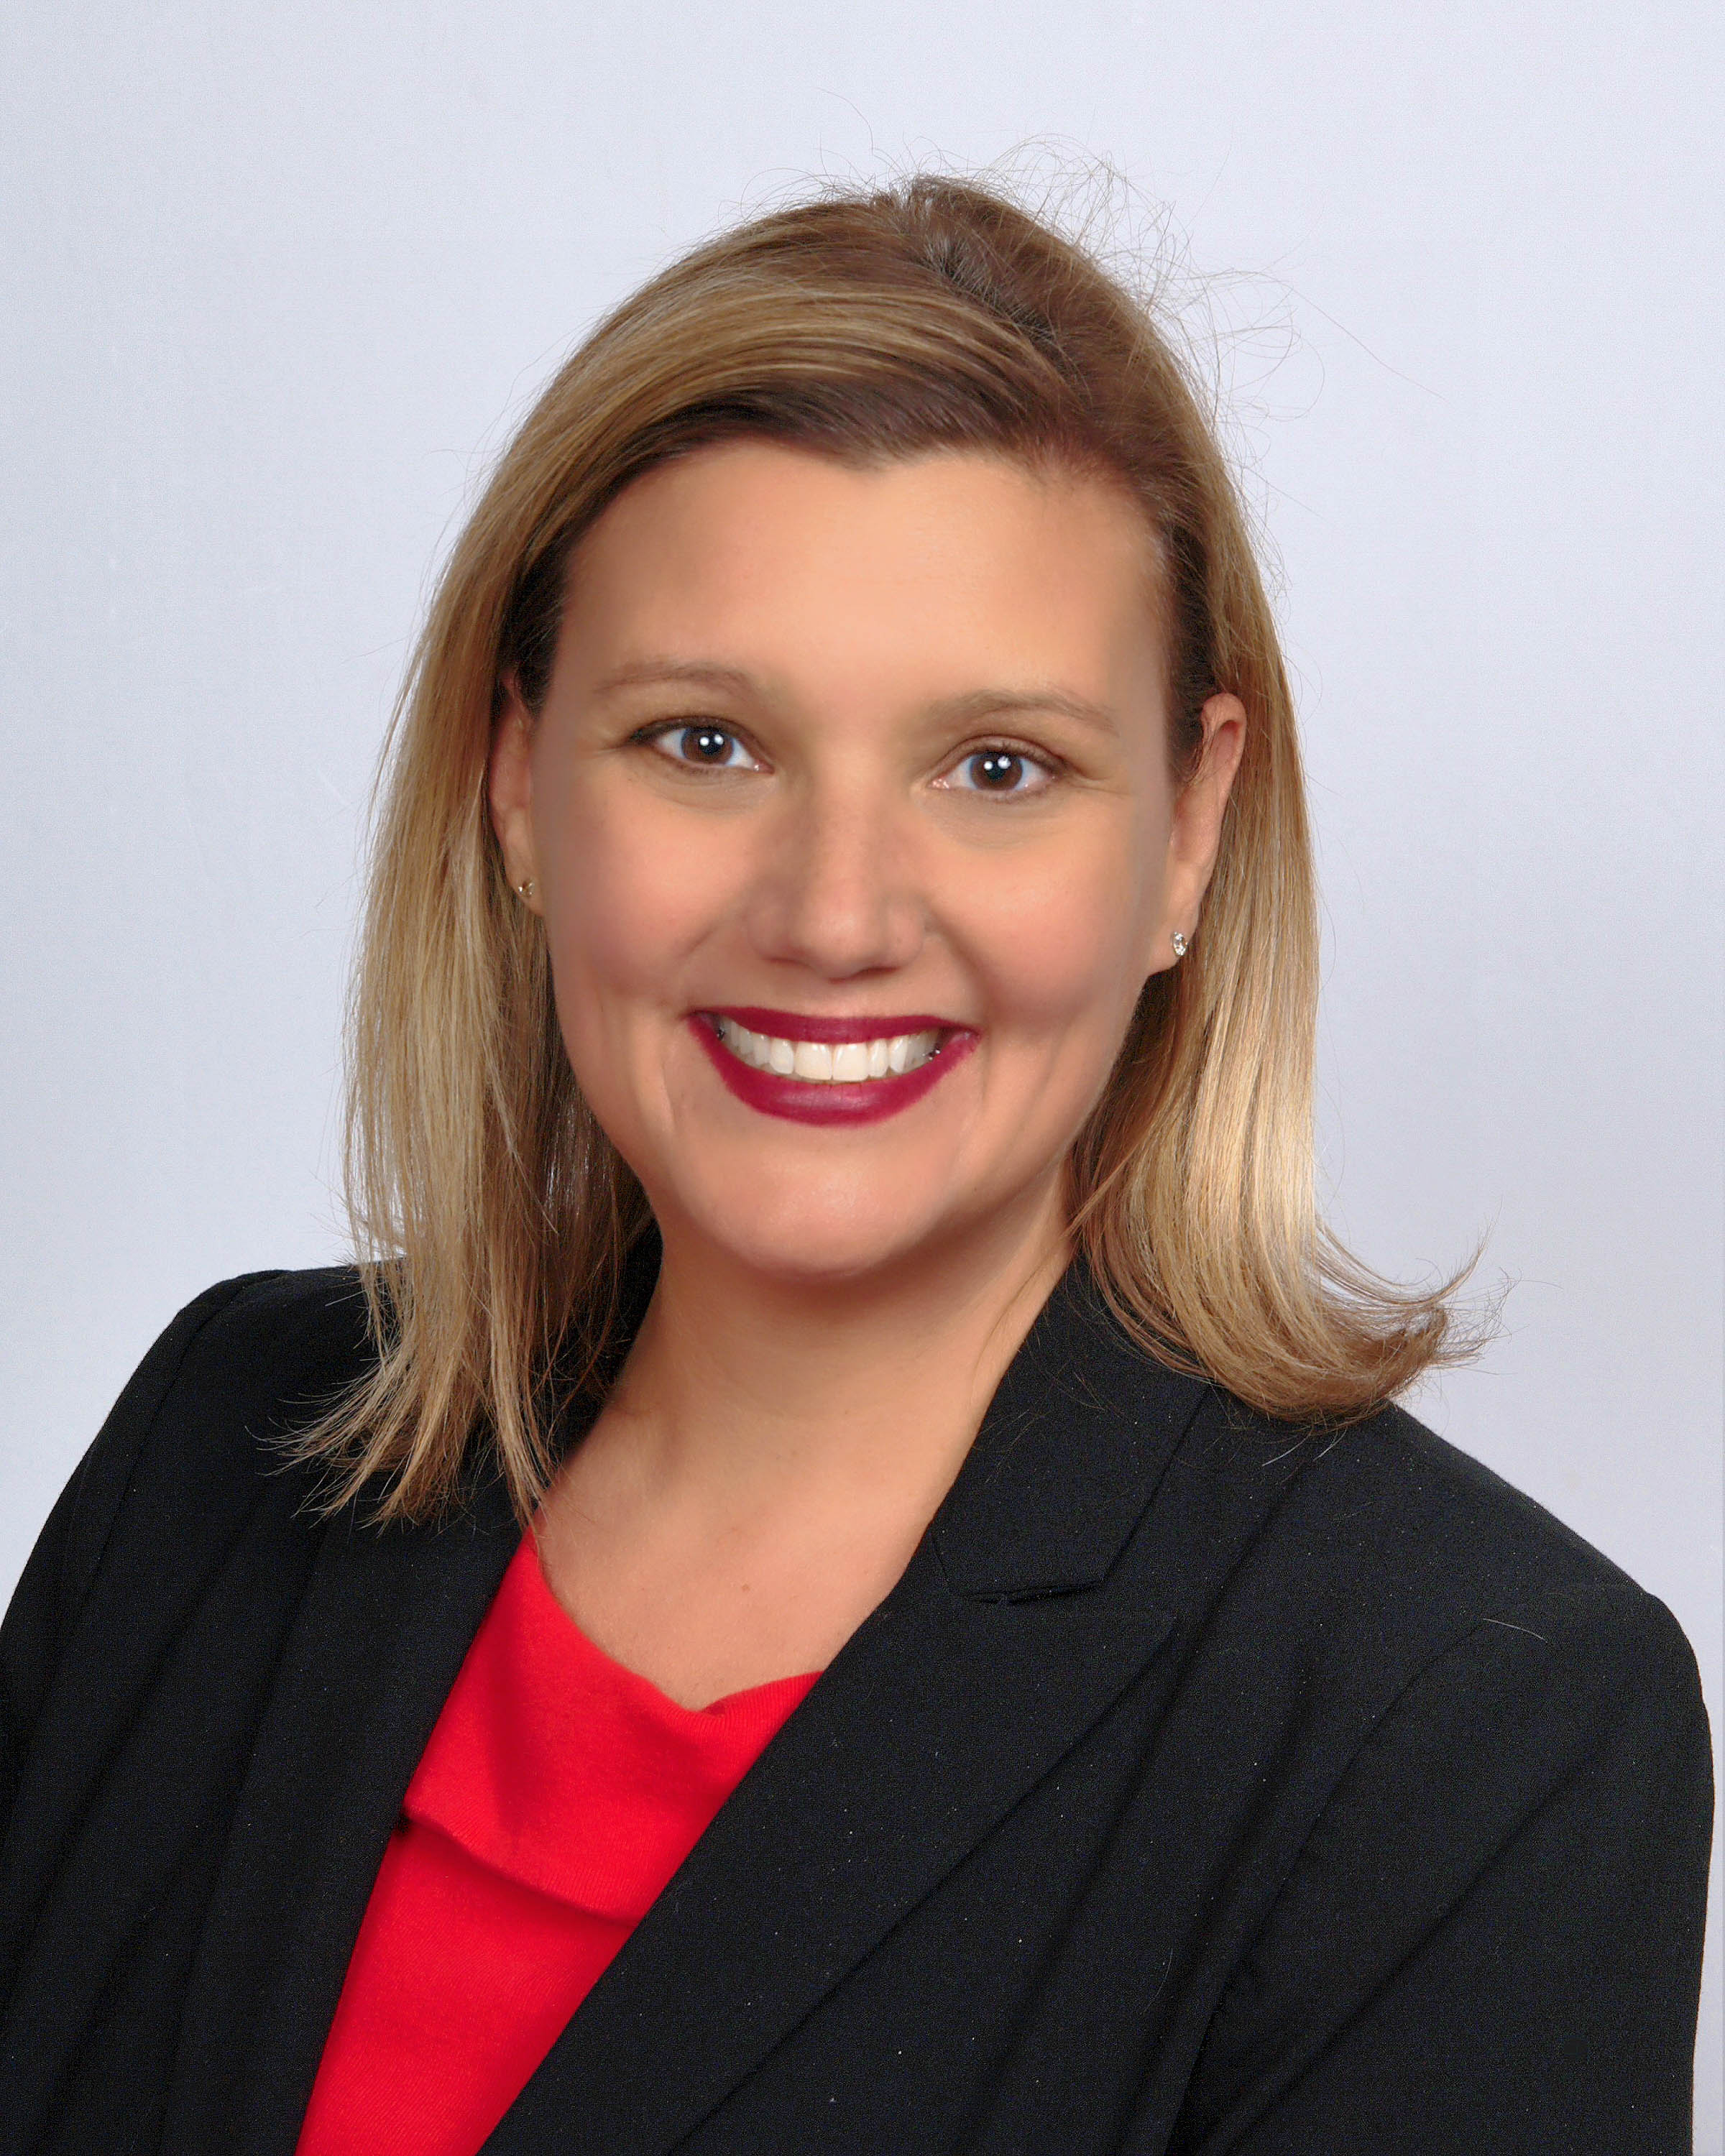 ERIN CONNELL, ATTORNEY & CO-MANAGING PARTNER - Licensed Indiana